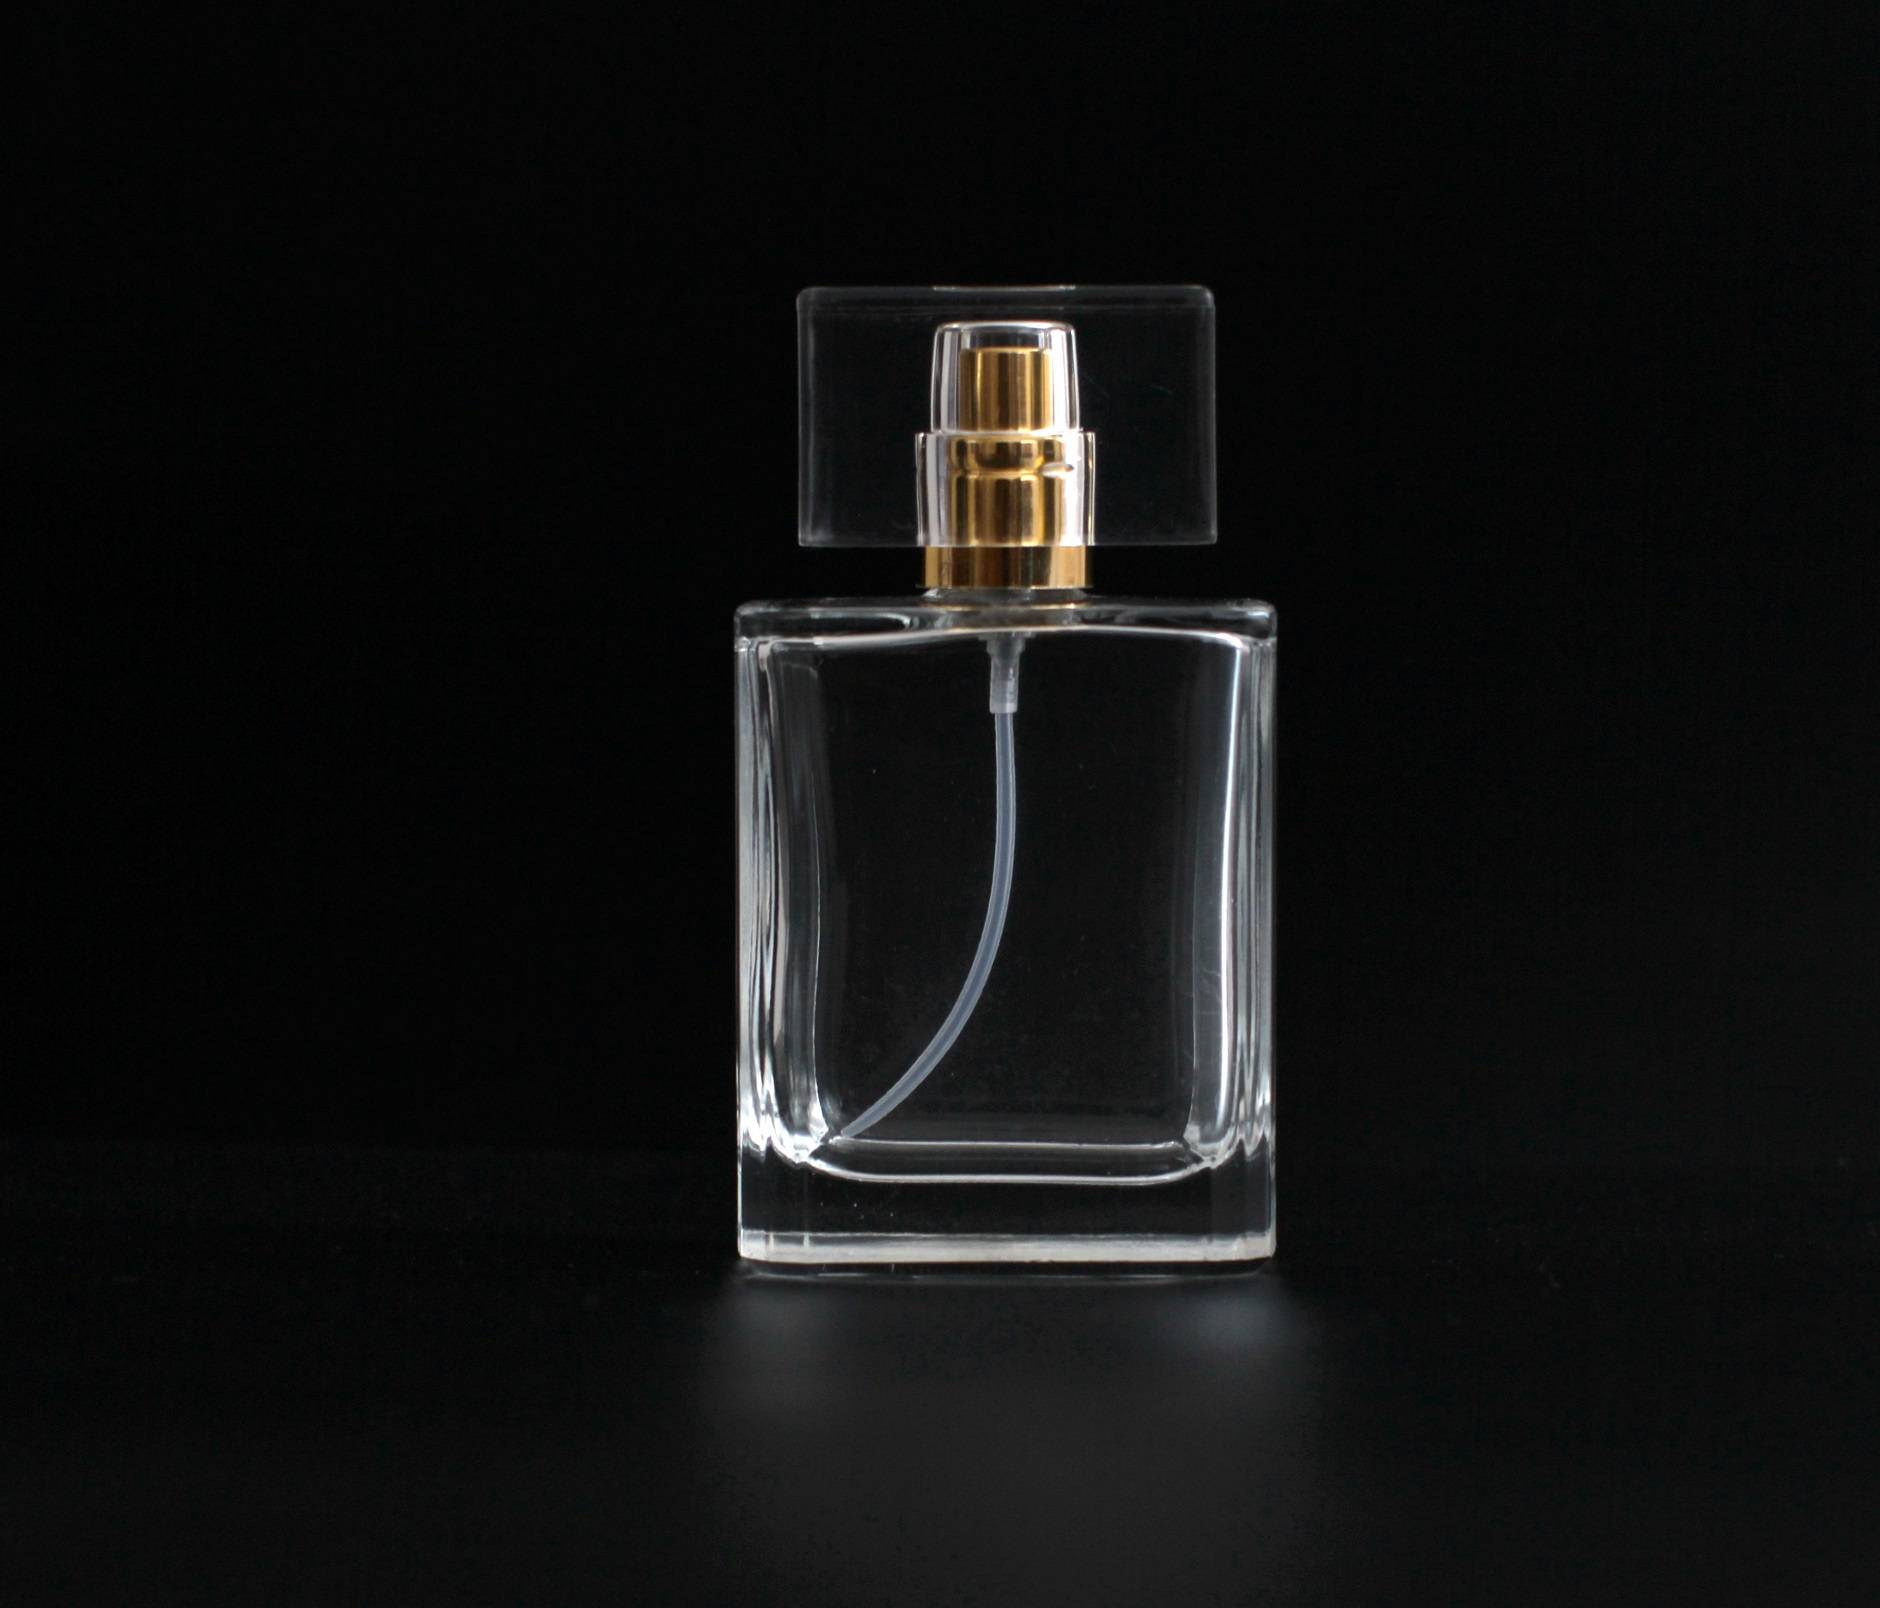 50ml crystal glass perfume bottle with pump cap